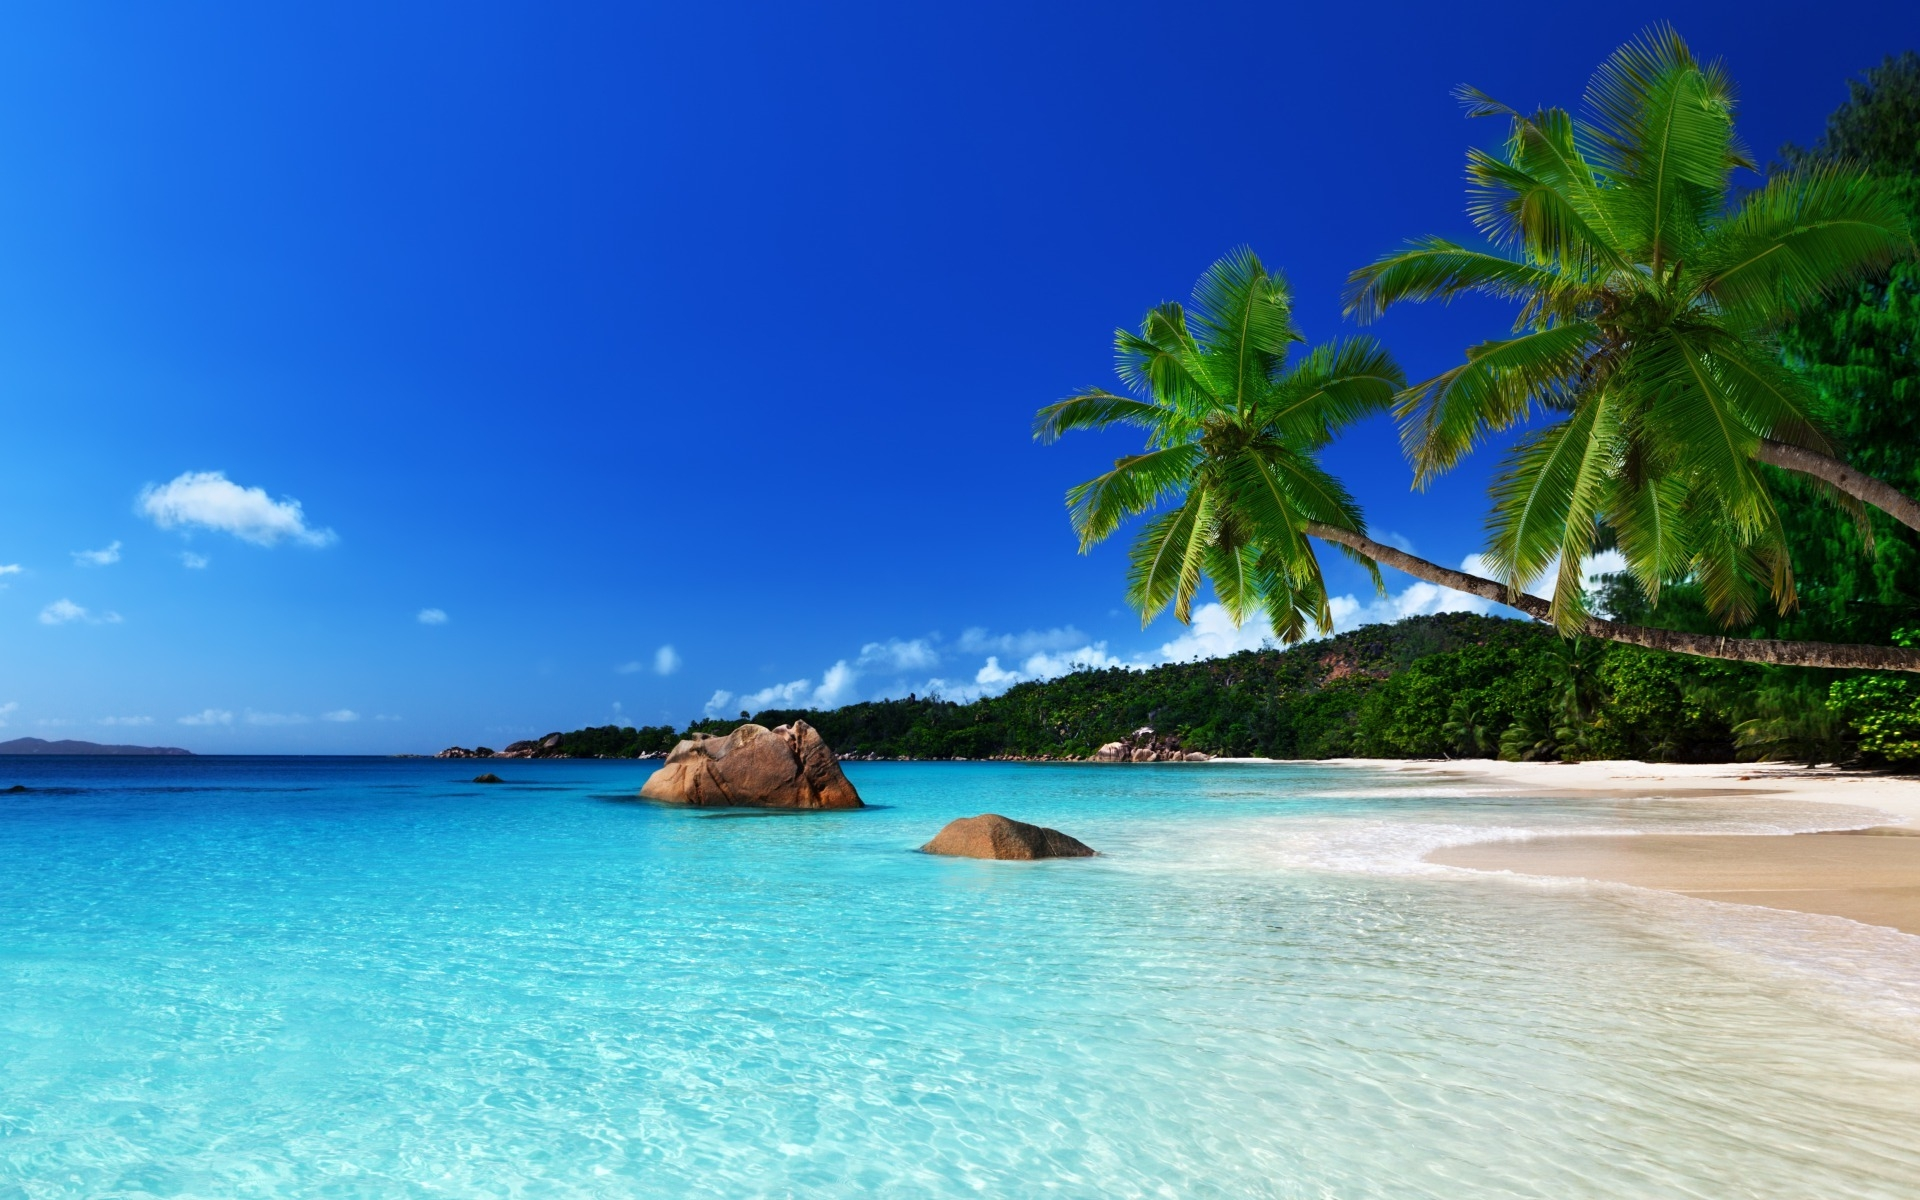 tropical island Computer Wallpapers Desktop Backgrounds 1920x1200 1920x1200